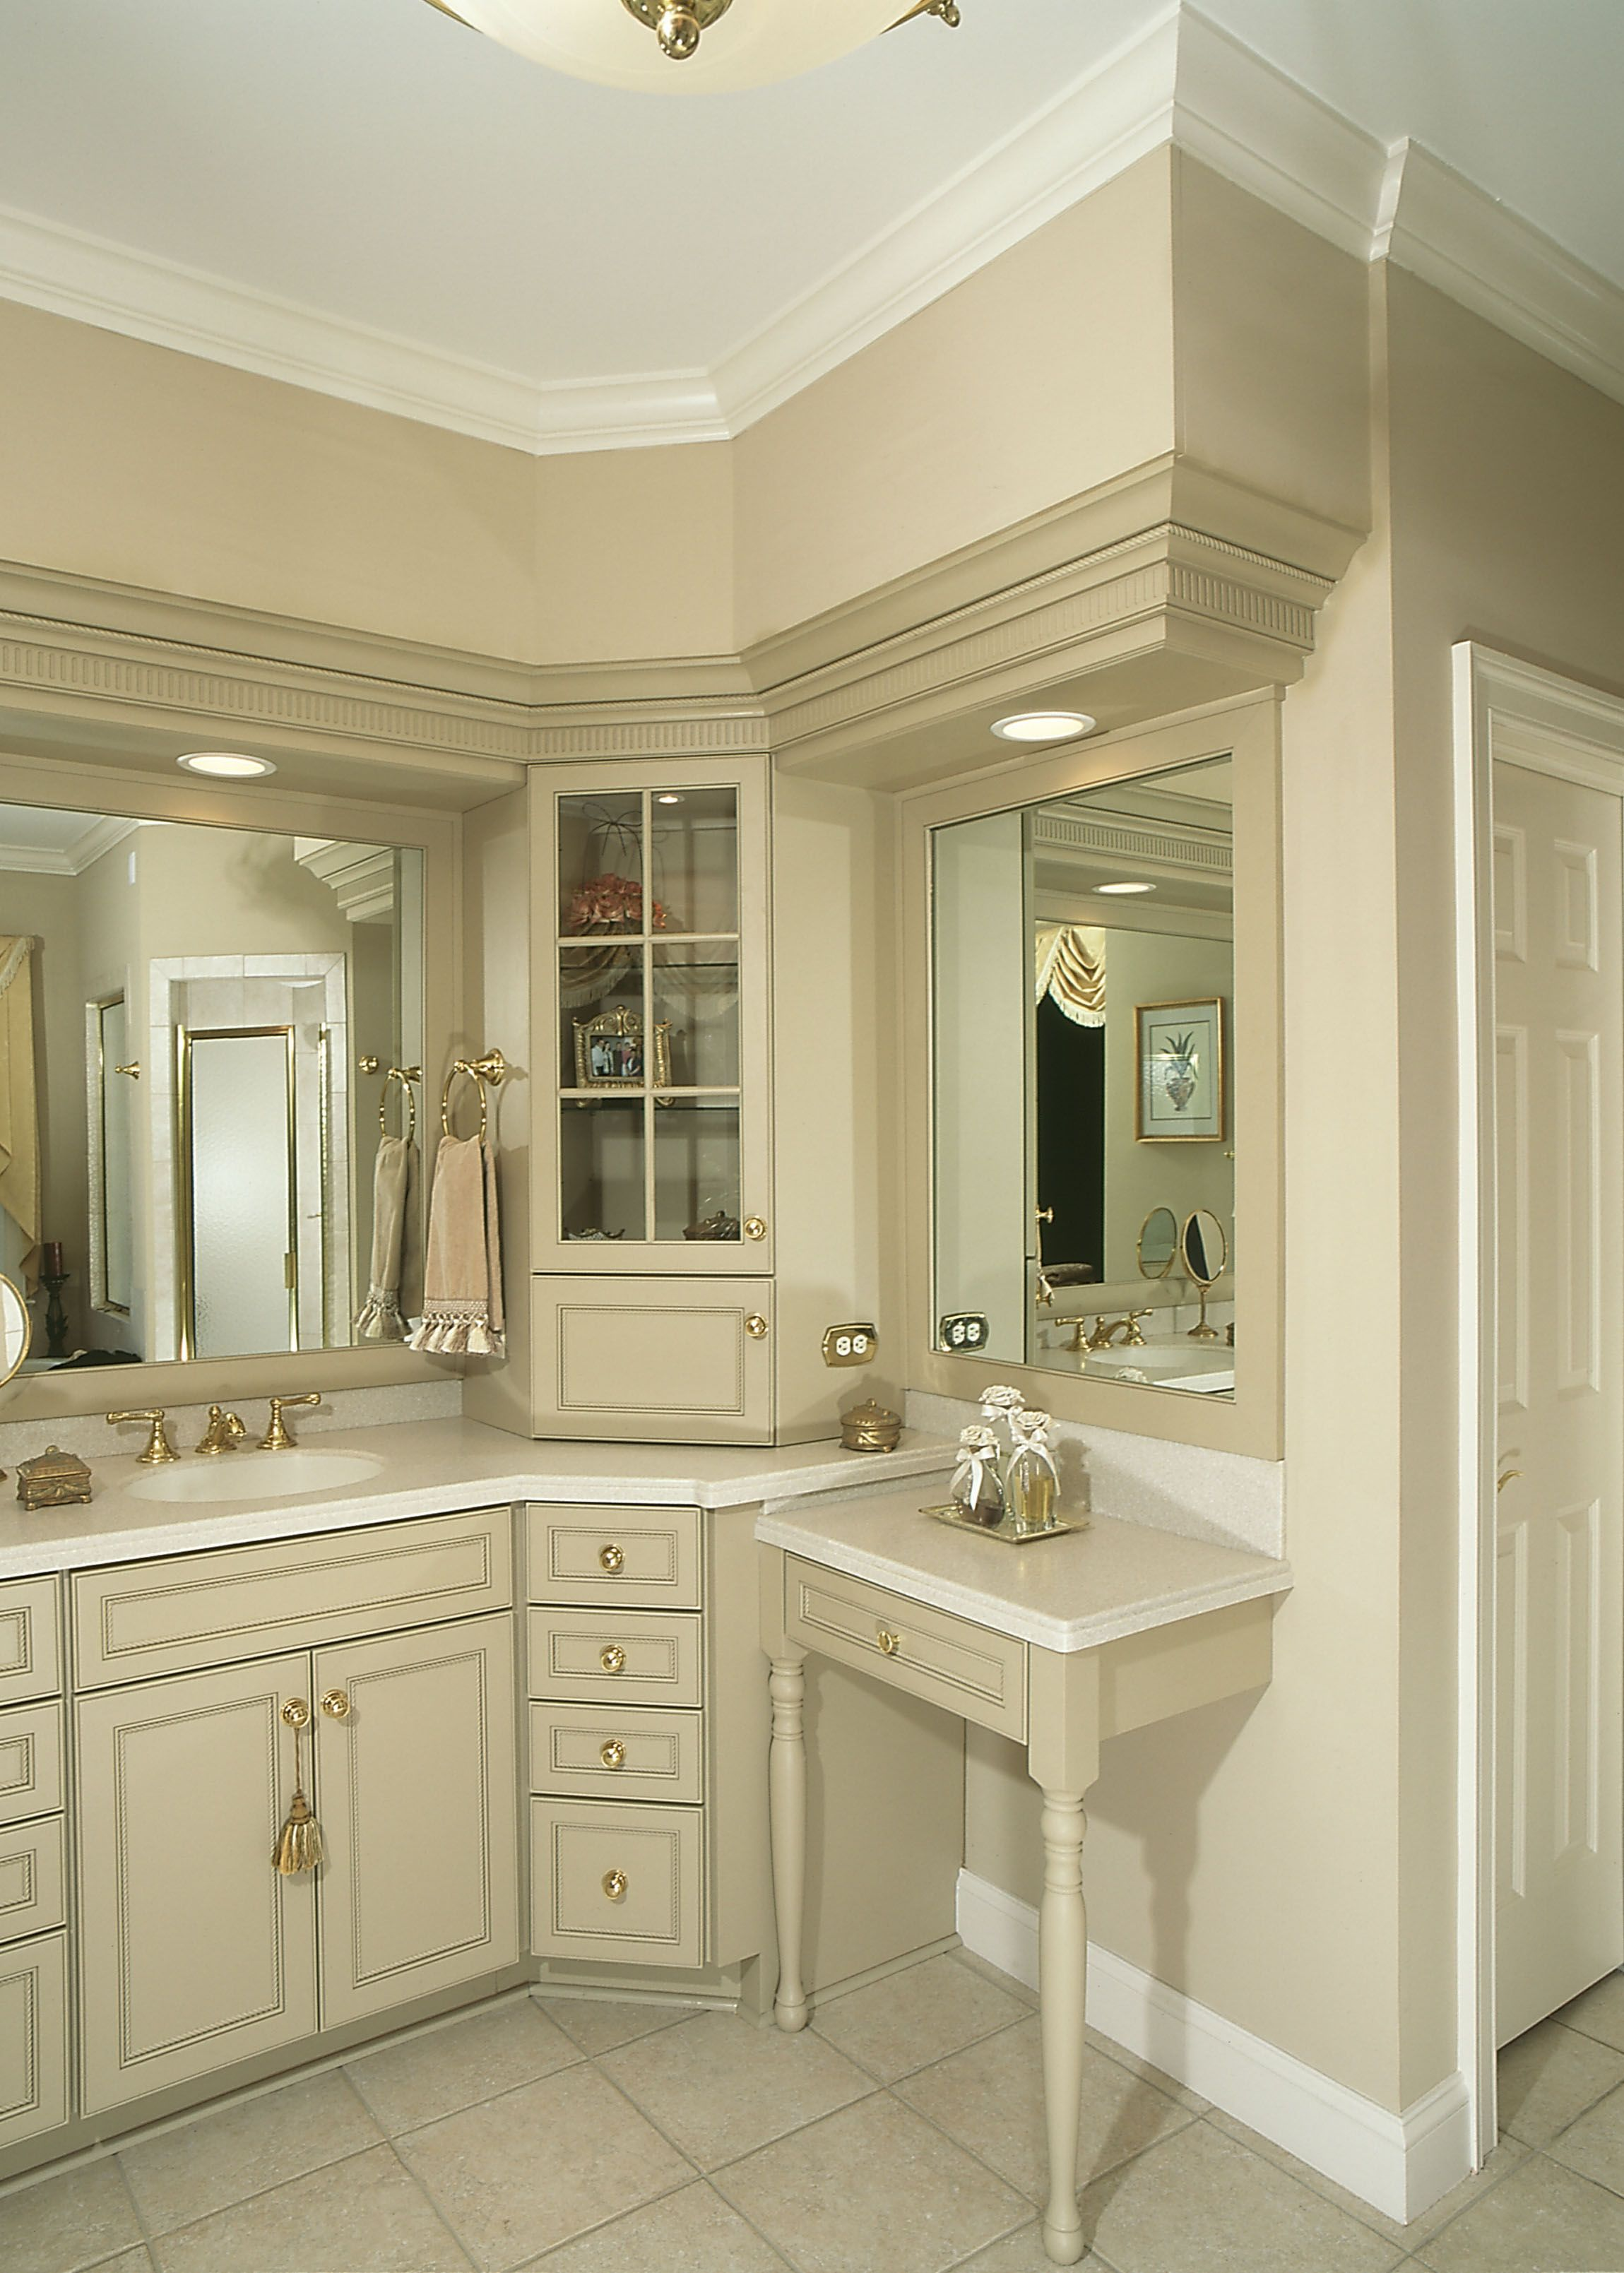 Custom Wood Products Cwp Cabinetry Bathroom Corner Cabinet Custom Bathroom Vanity Custom Bathroom